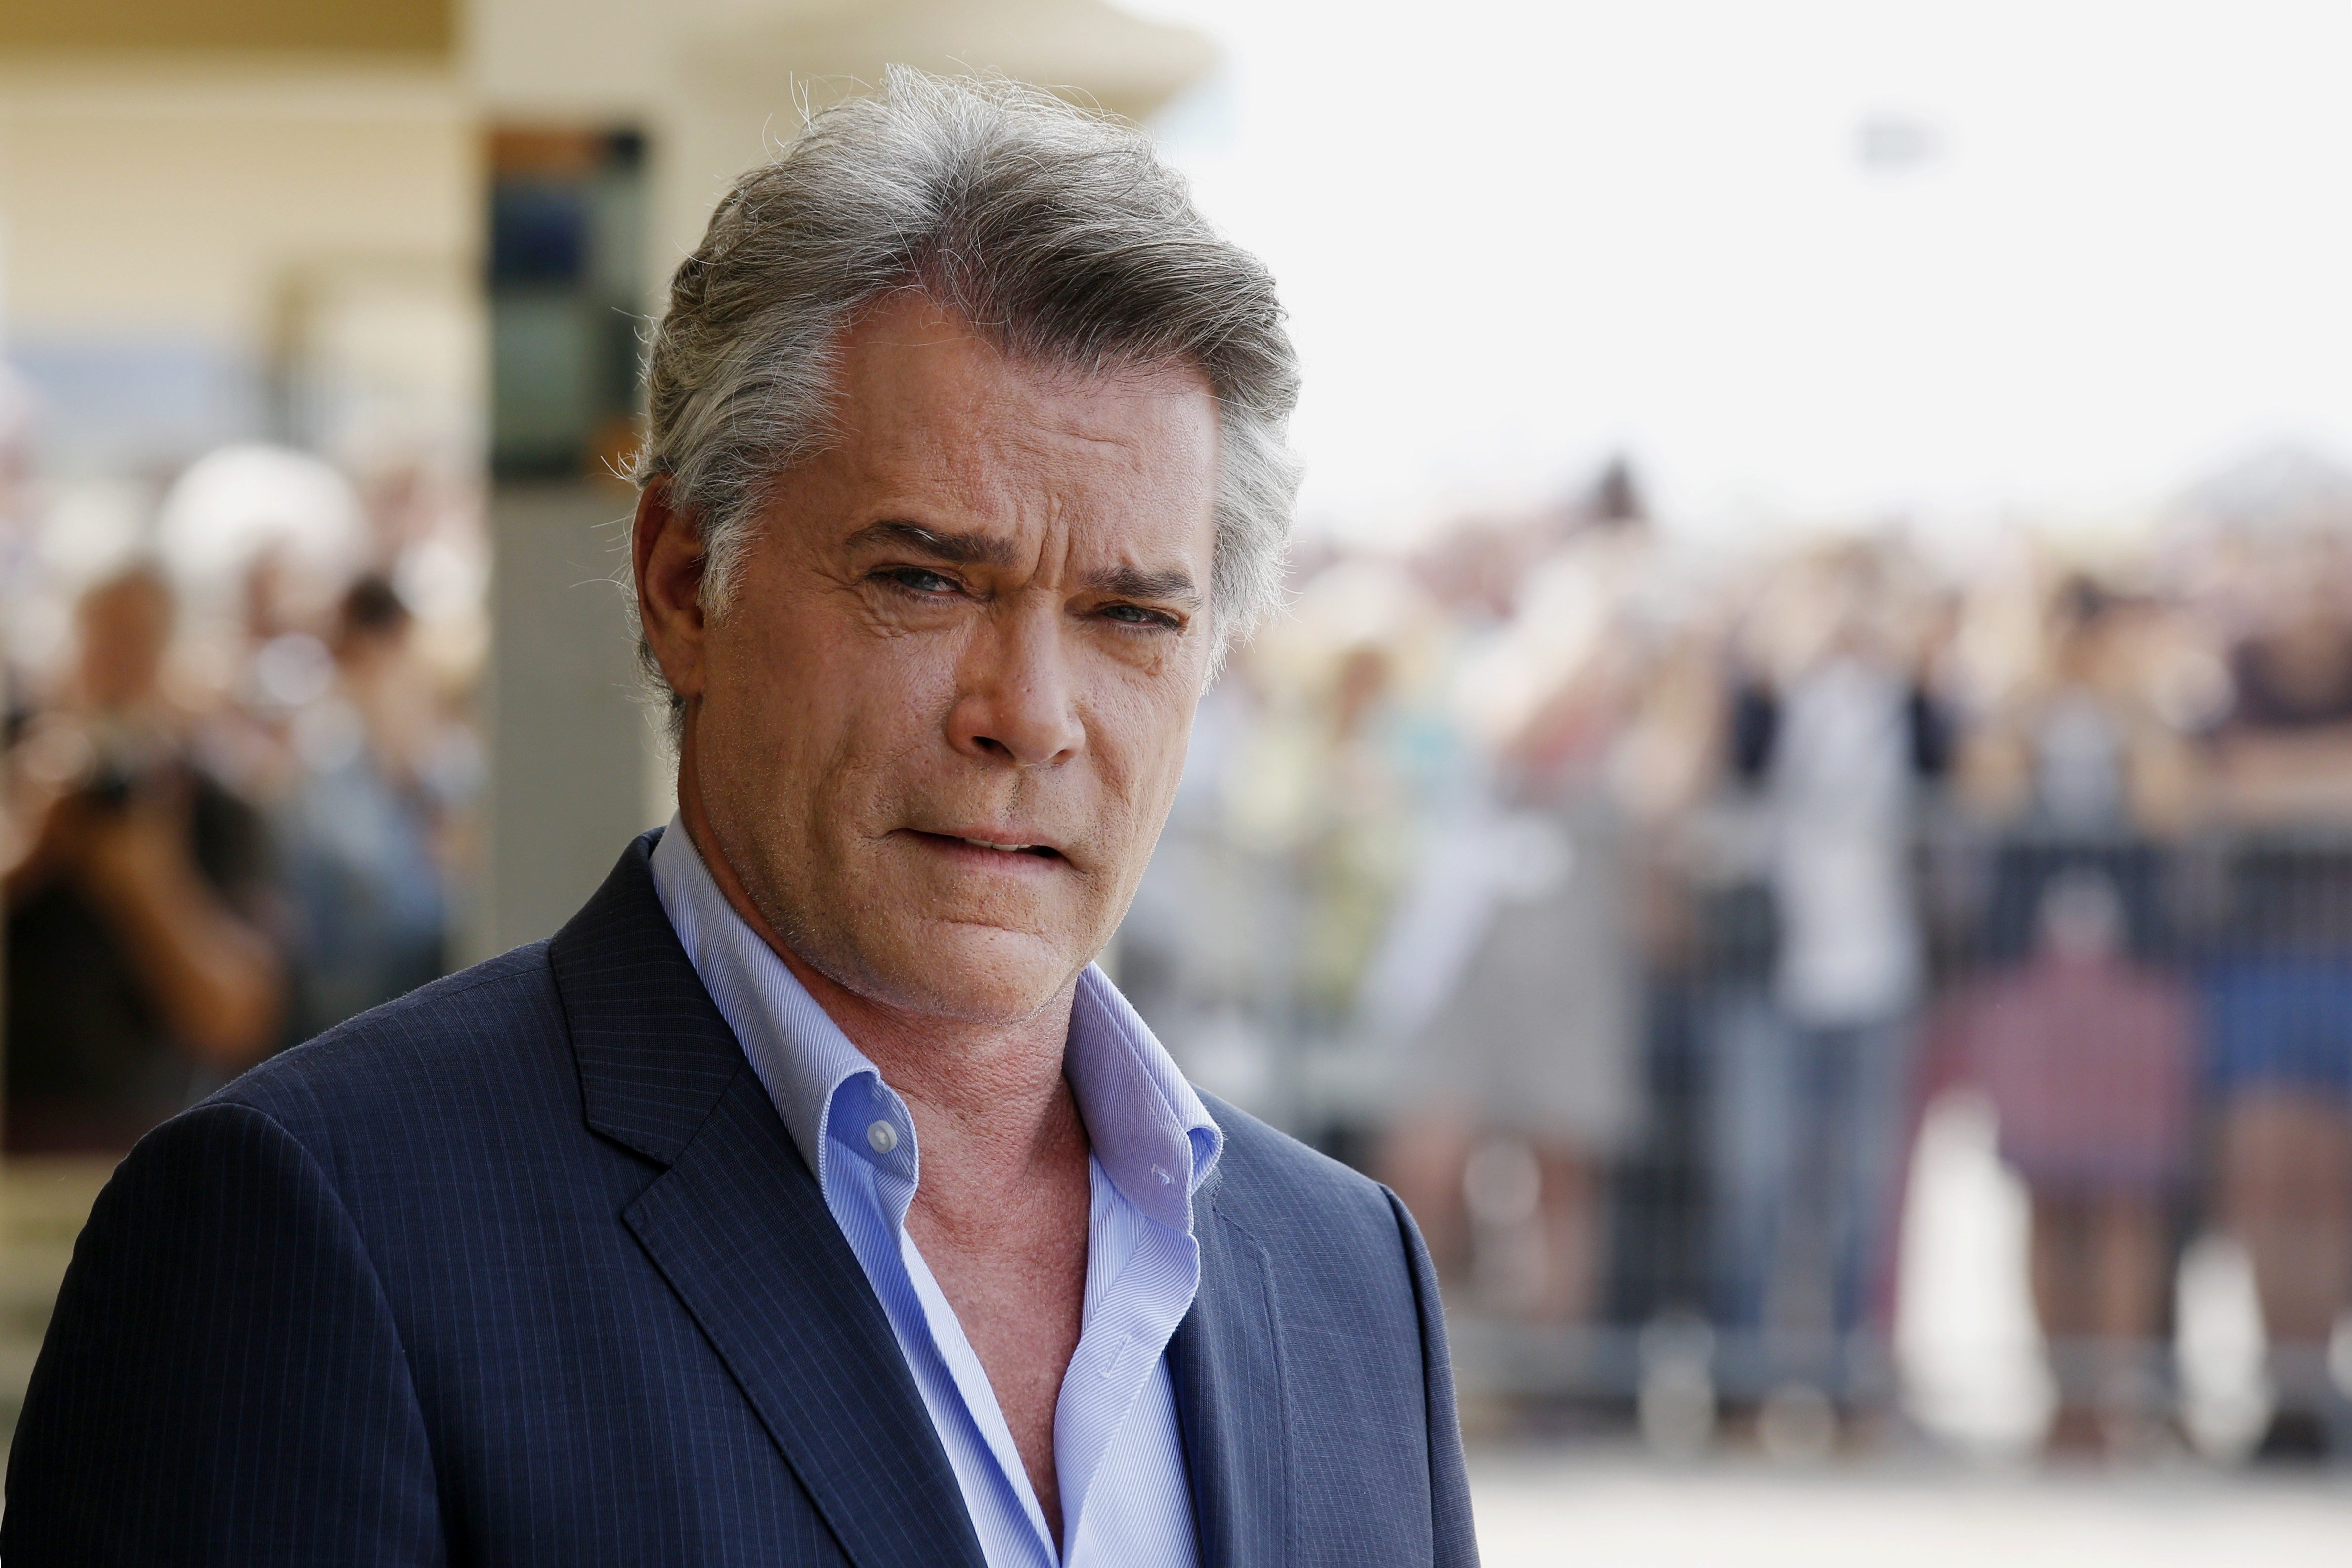 Mandatory Credit: Photo by Franck Leguet/Shutterstock (4102967f) Ray Liotta Ray Liotta photocall, 40th Deauville American Film Festival, Deauville, France - 09 Sep 2014